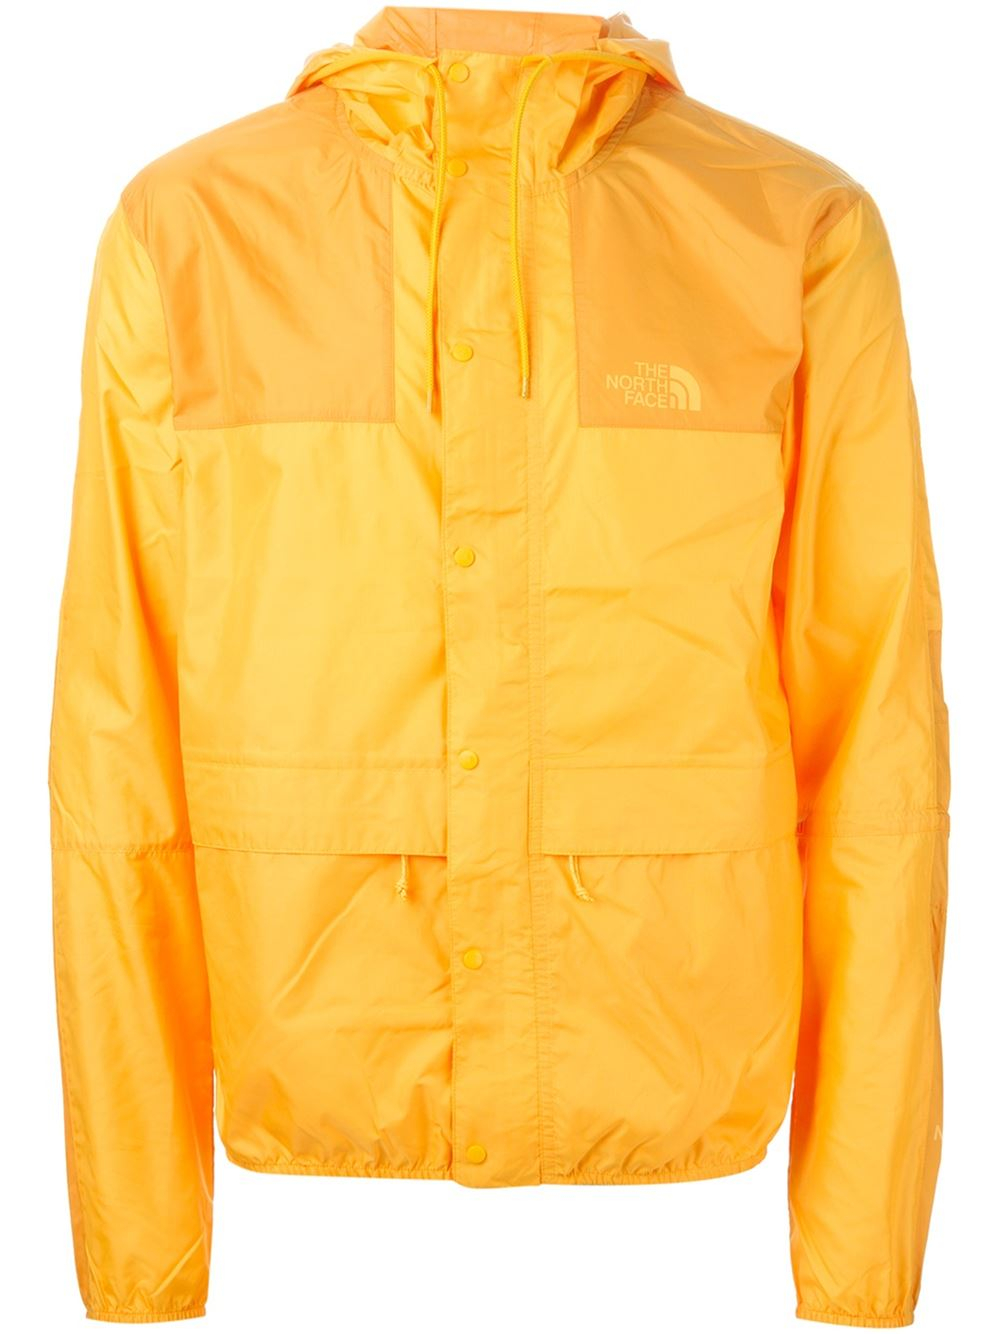 Lyst - The north face Hooded Windbreaker Jacket in Yellow for Men